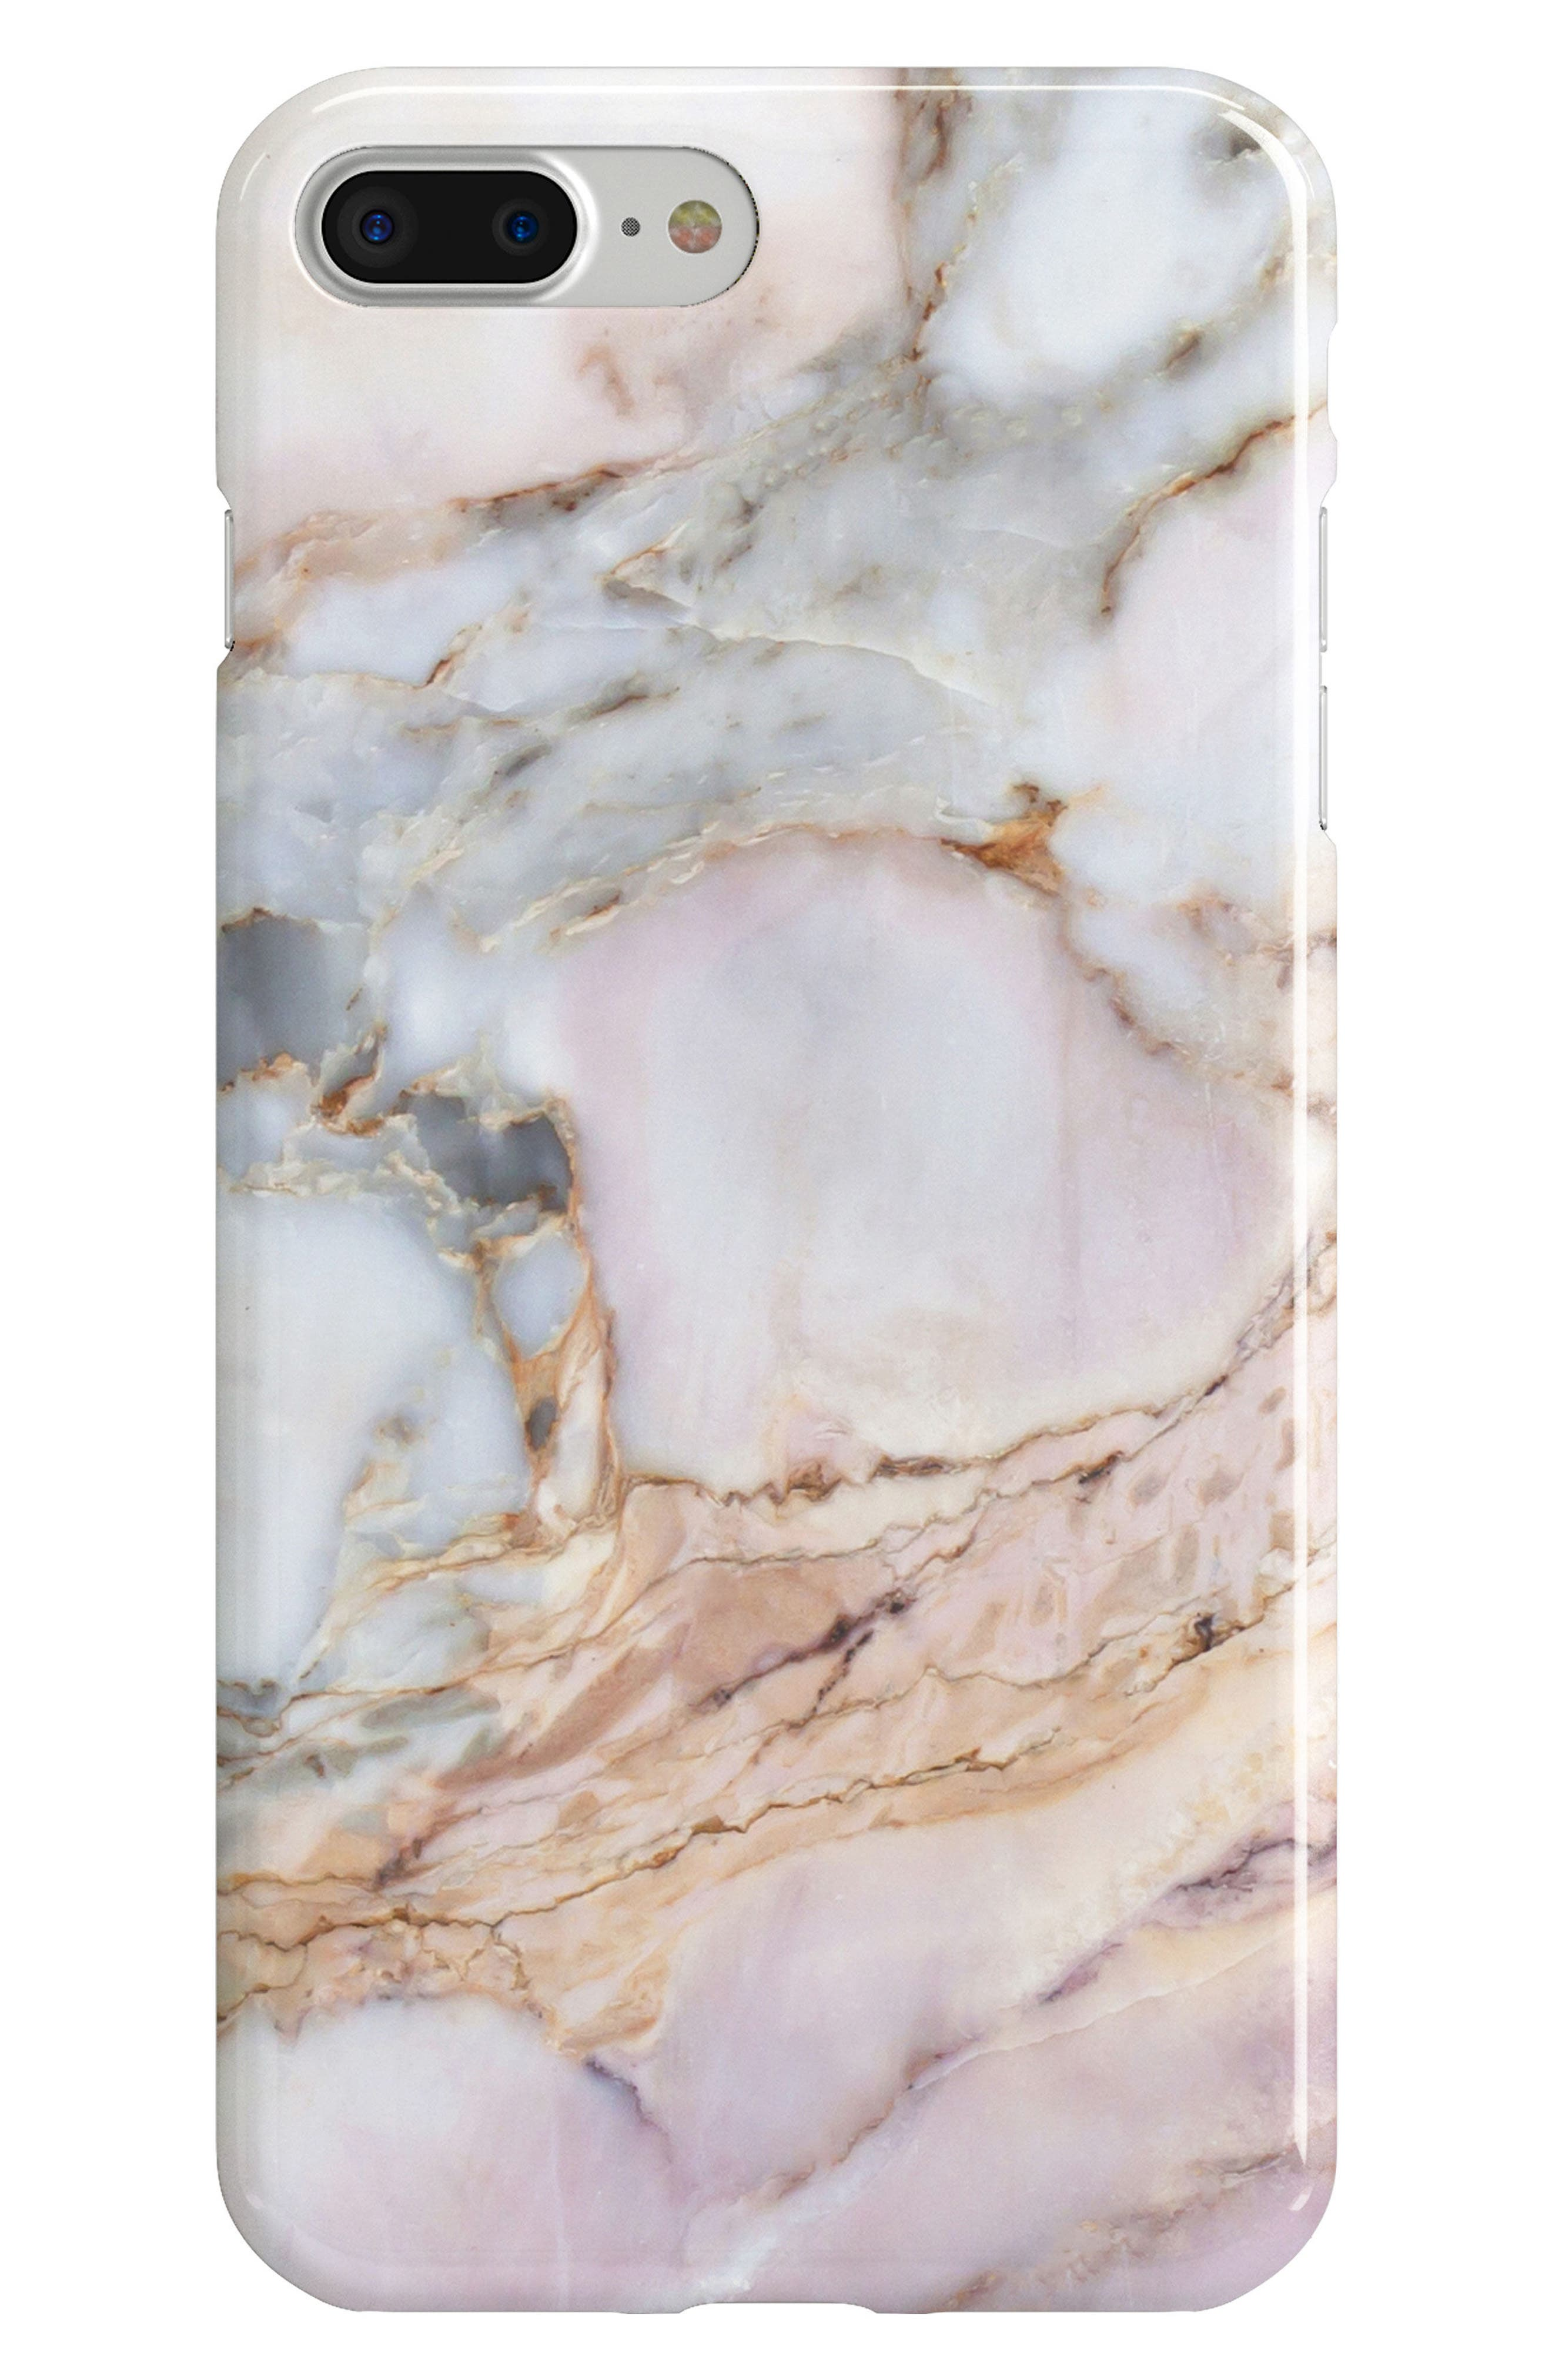 iphone 8 cell phone casesDesigner Phone Cases Iphone 8 Iphone 8 Case Price Apple Iphone Case 8 Custom Iphone Skins Buy Iphone 8 Cases Online Chanel #6